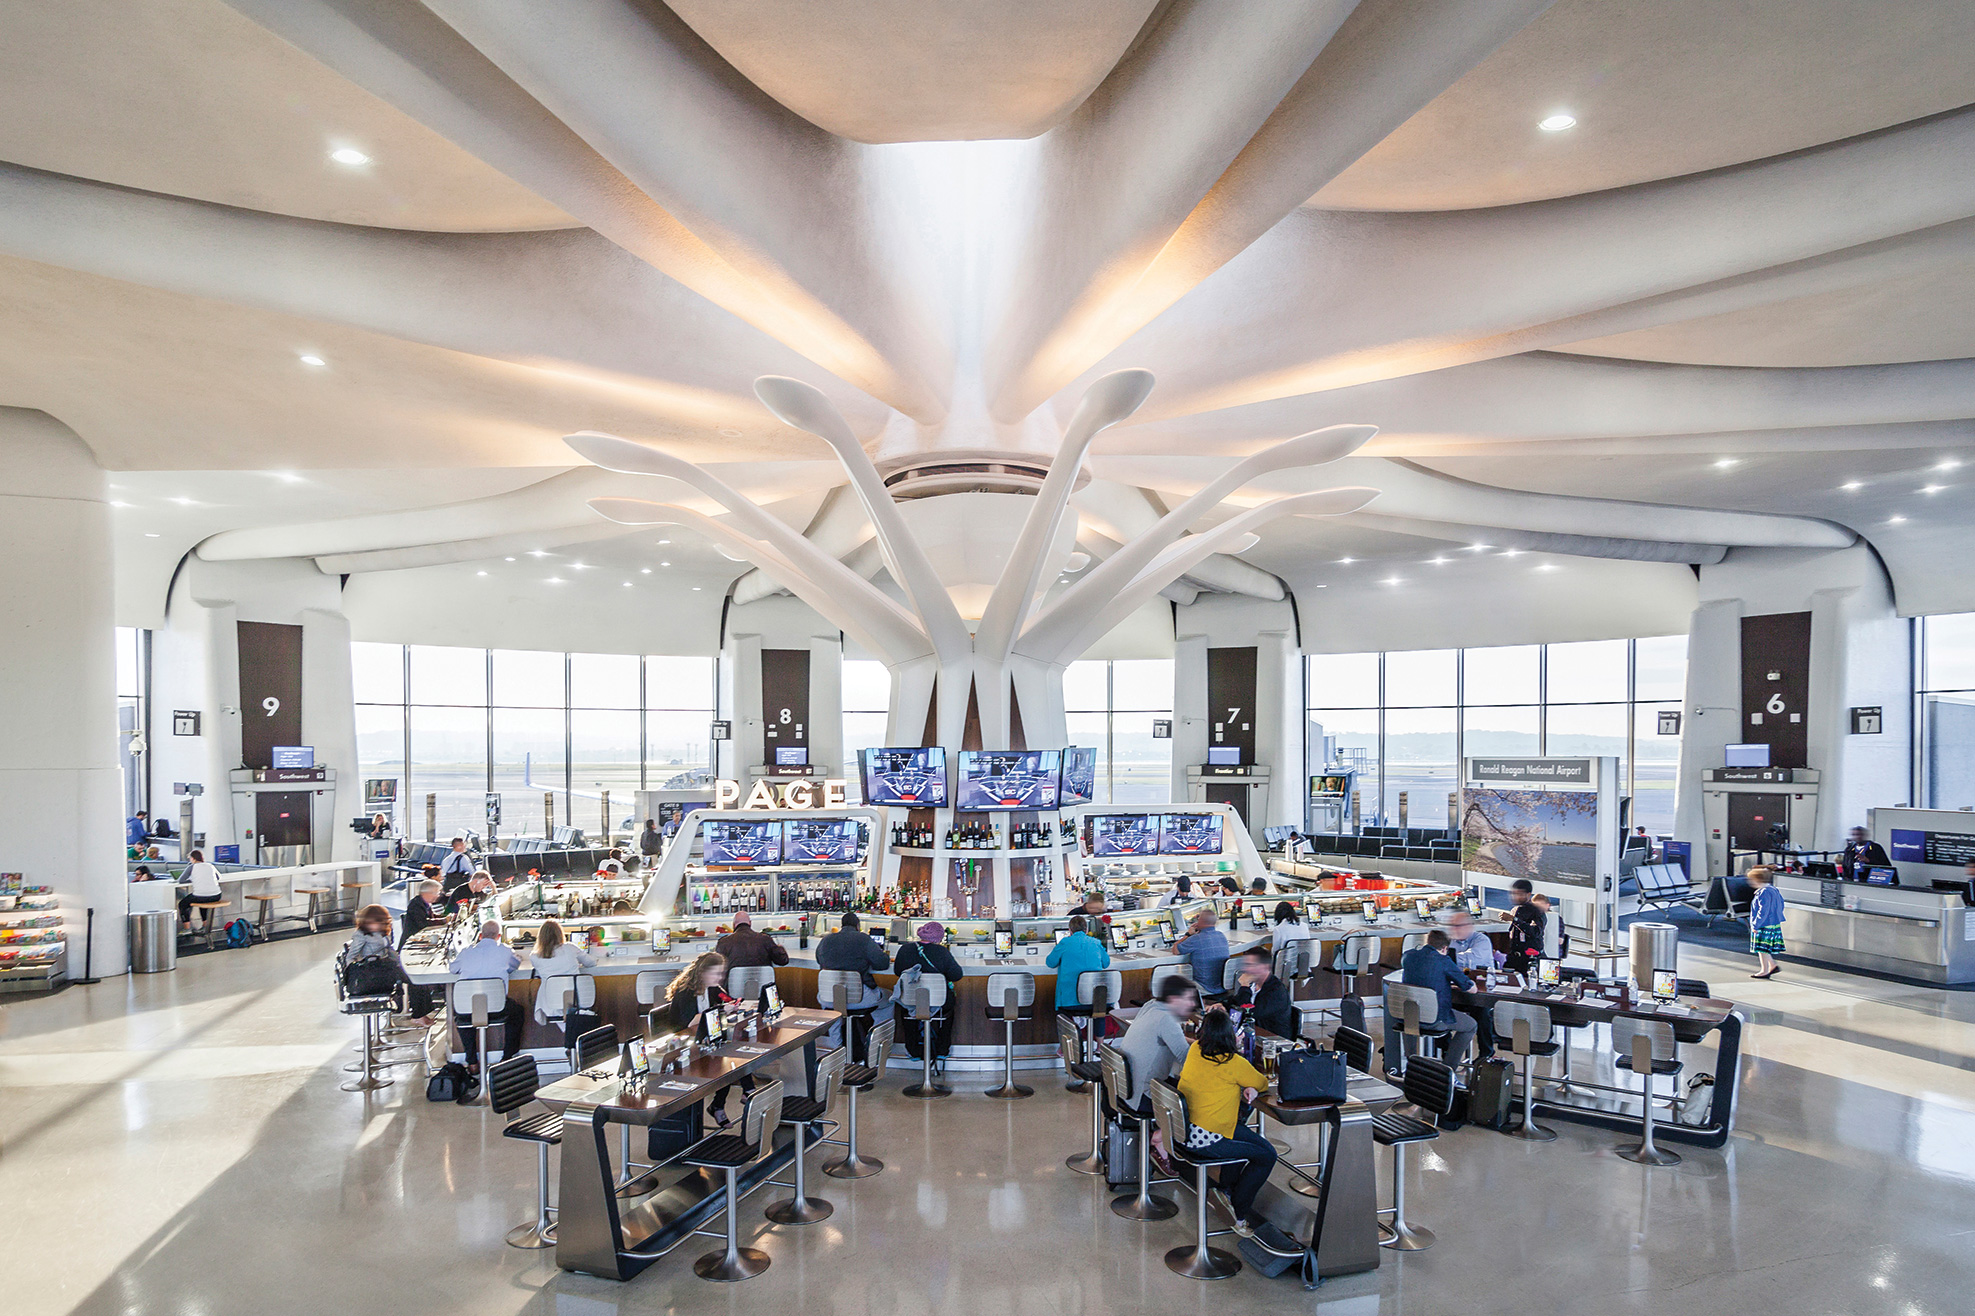 Page Reagan National Airport Architectural Lighting